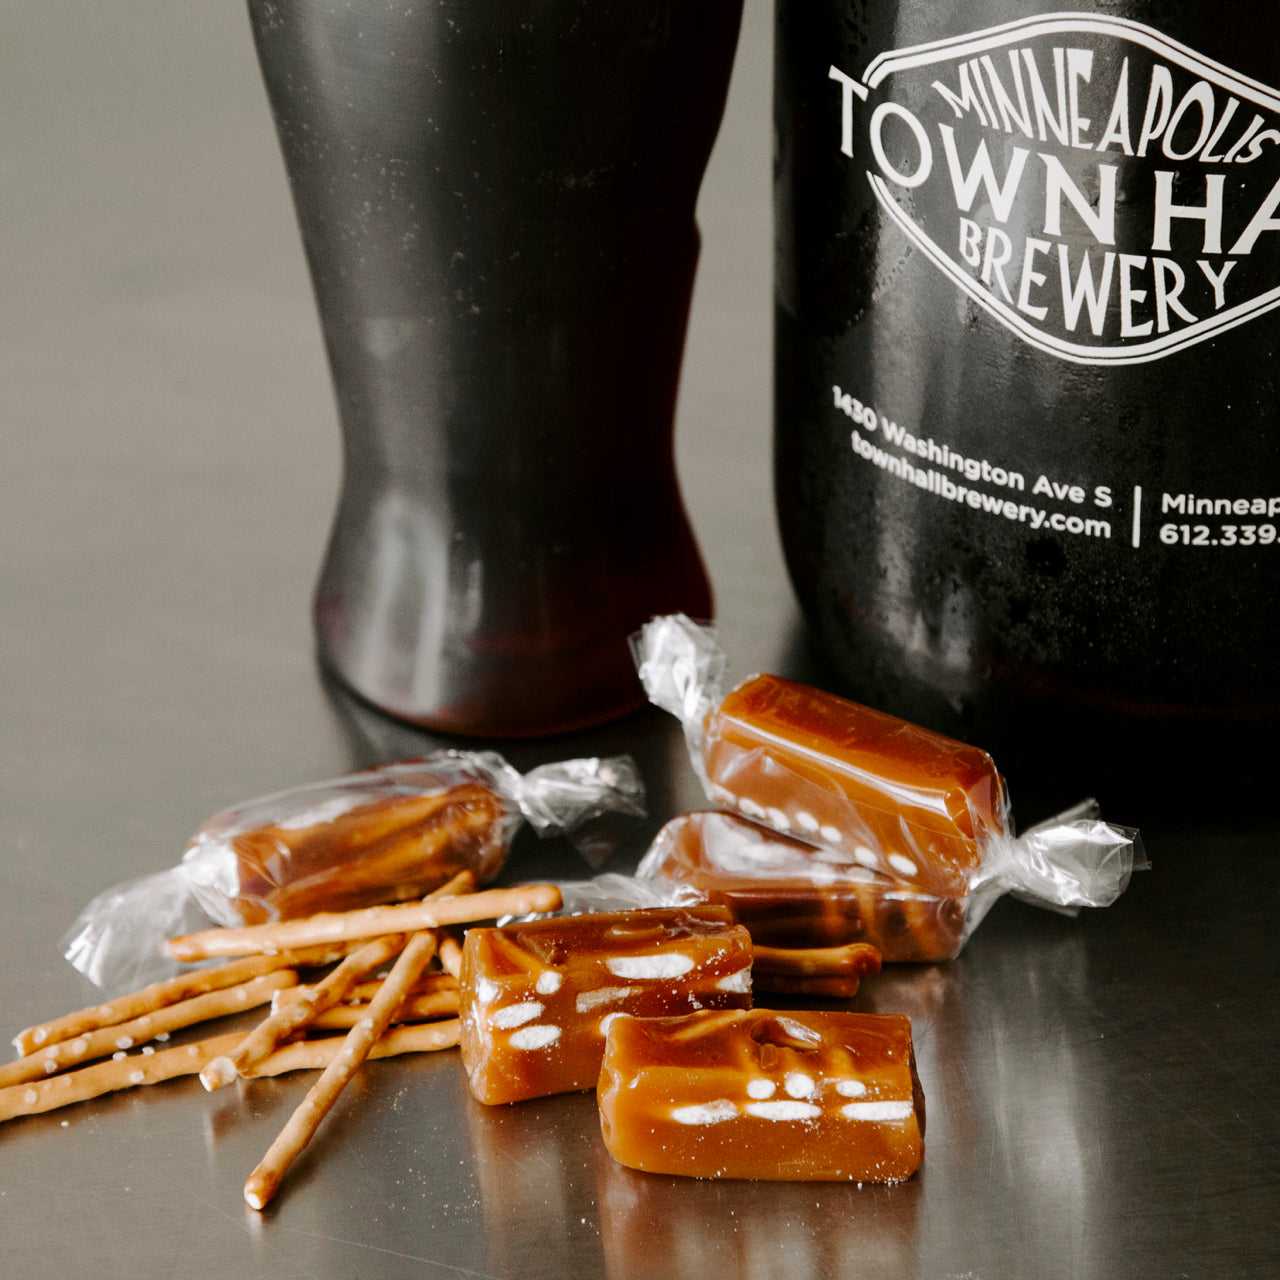 pub crawl caramels from Sweet jules gifts top beers from Minnesota large box has 32 caramels